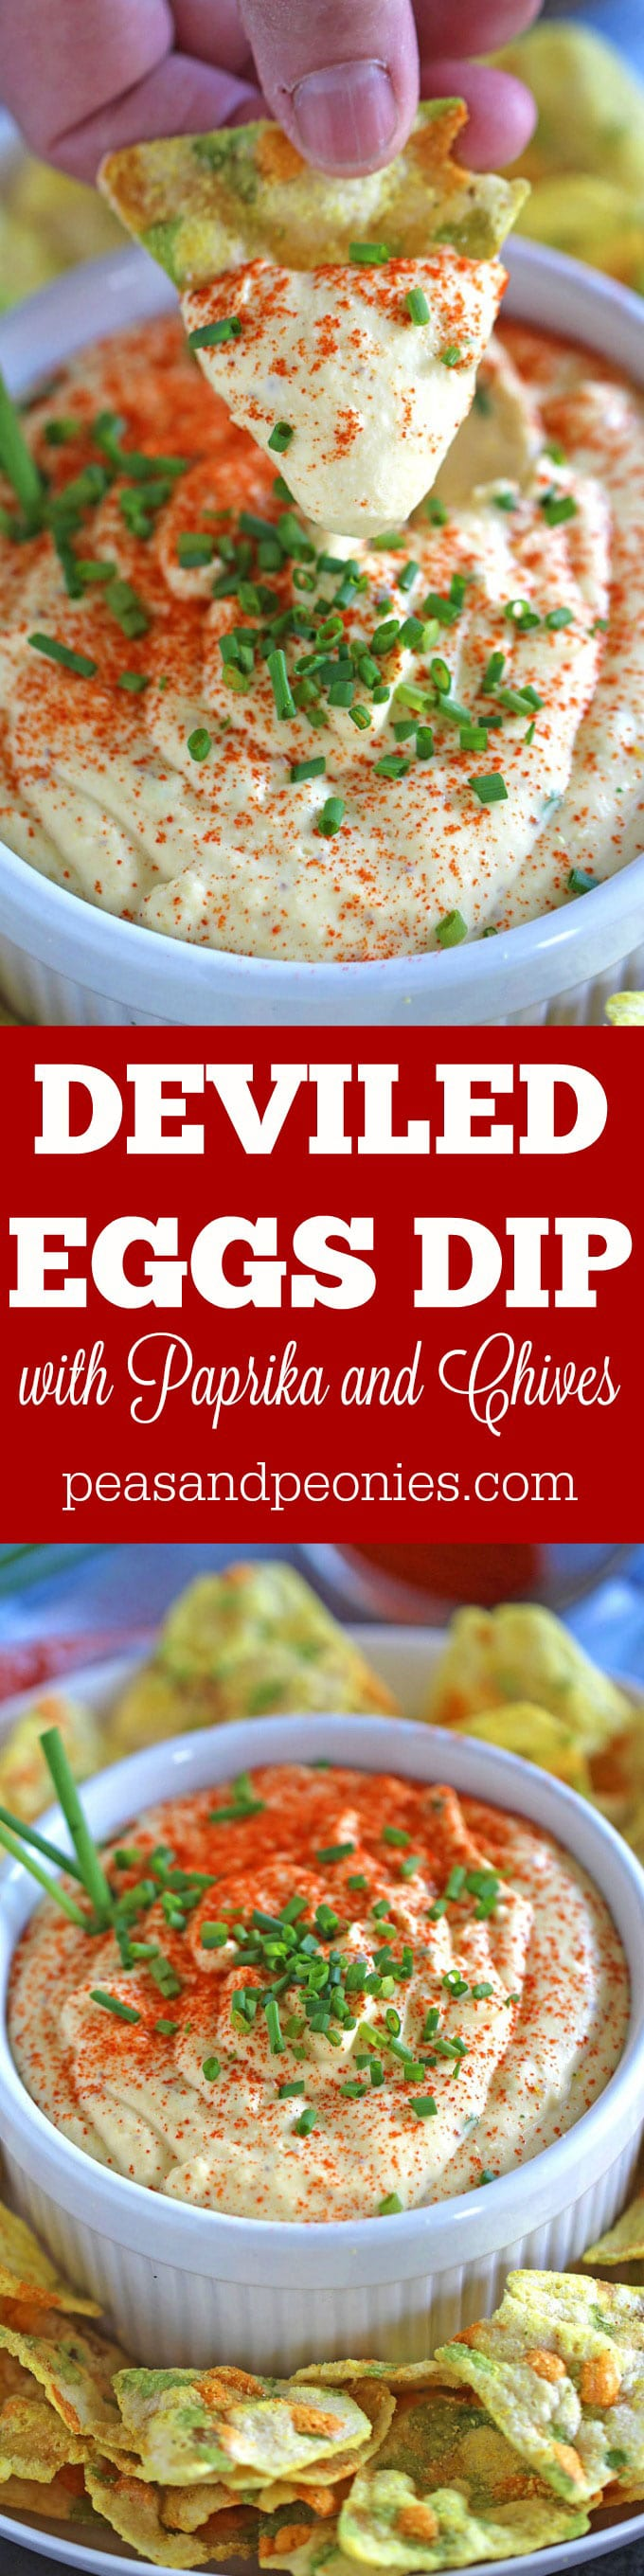 Deviled Eggs Dip with paprika and chives is a great way to use leftover eggs. The dip is naturally Gluten Free, creamy, just a bit spicy, this is an easy and delicious appetizer.